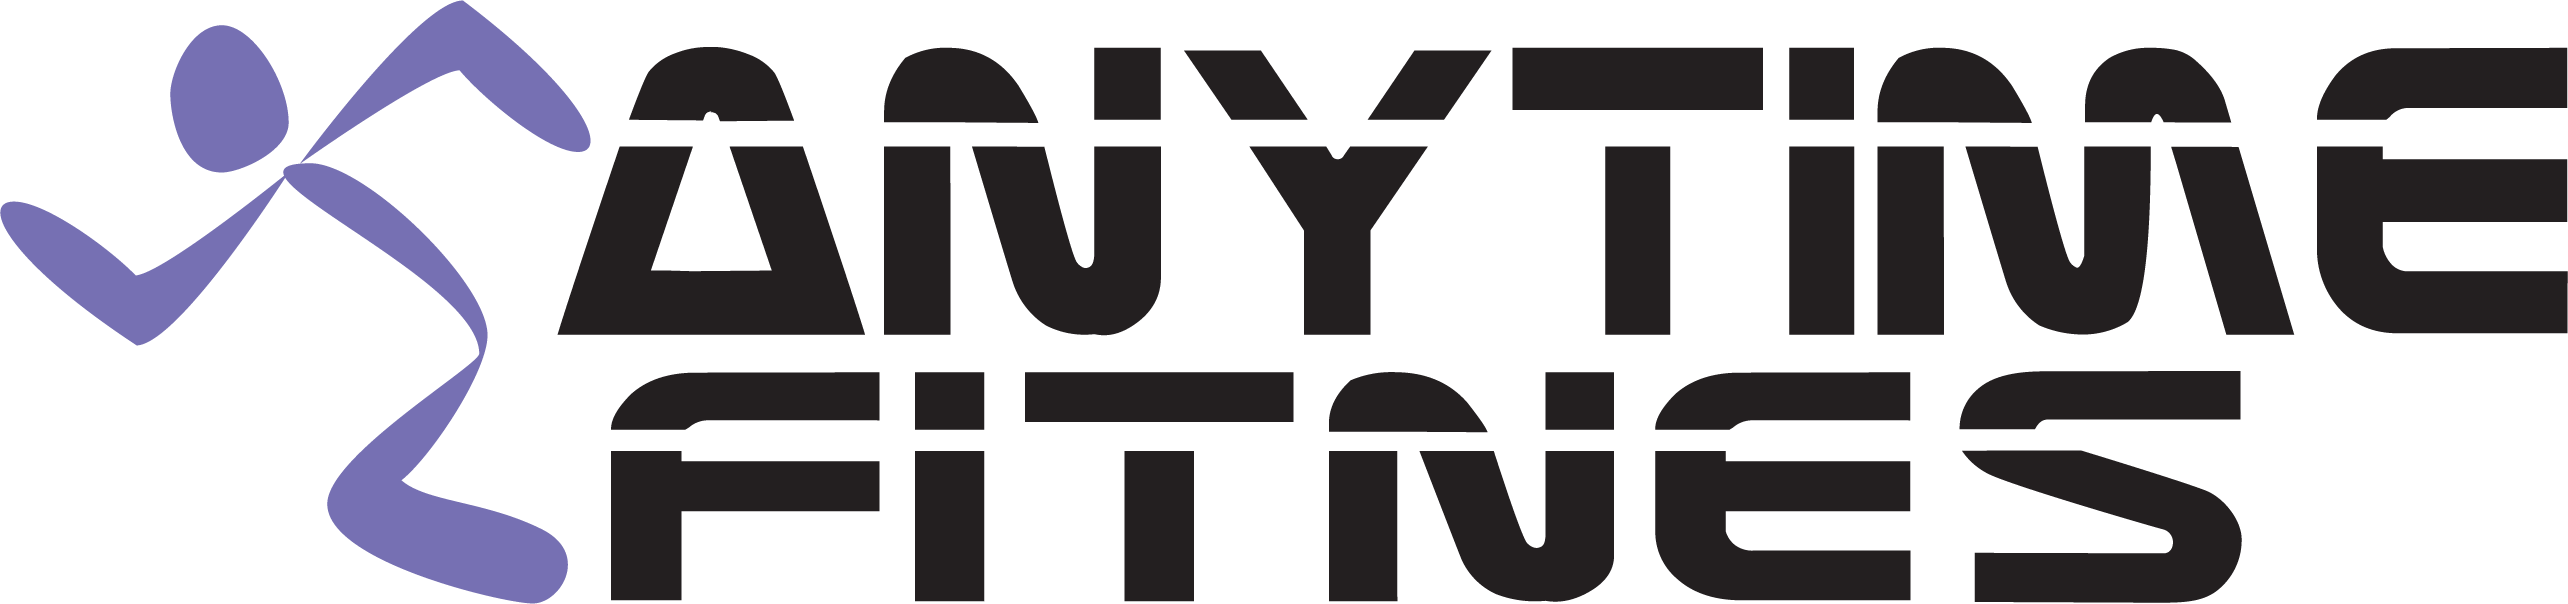 Anytime Fitness Logo png